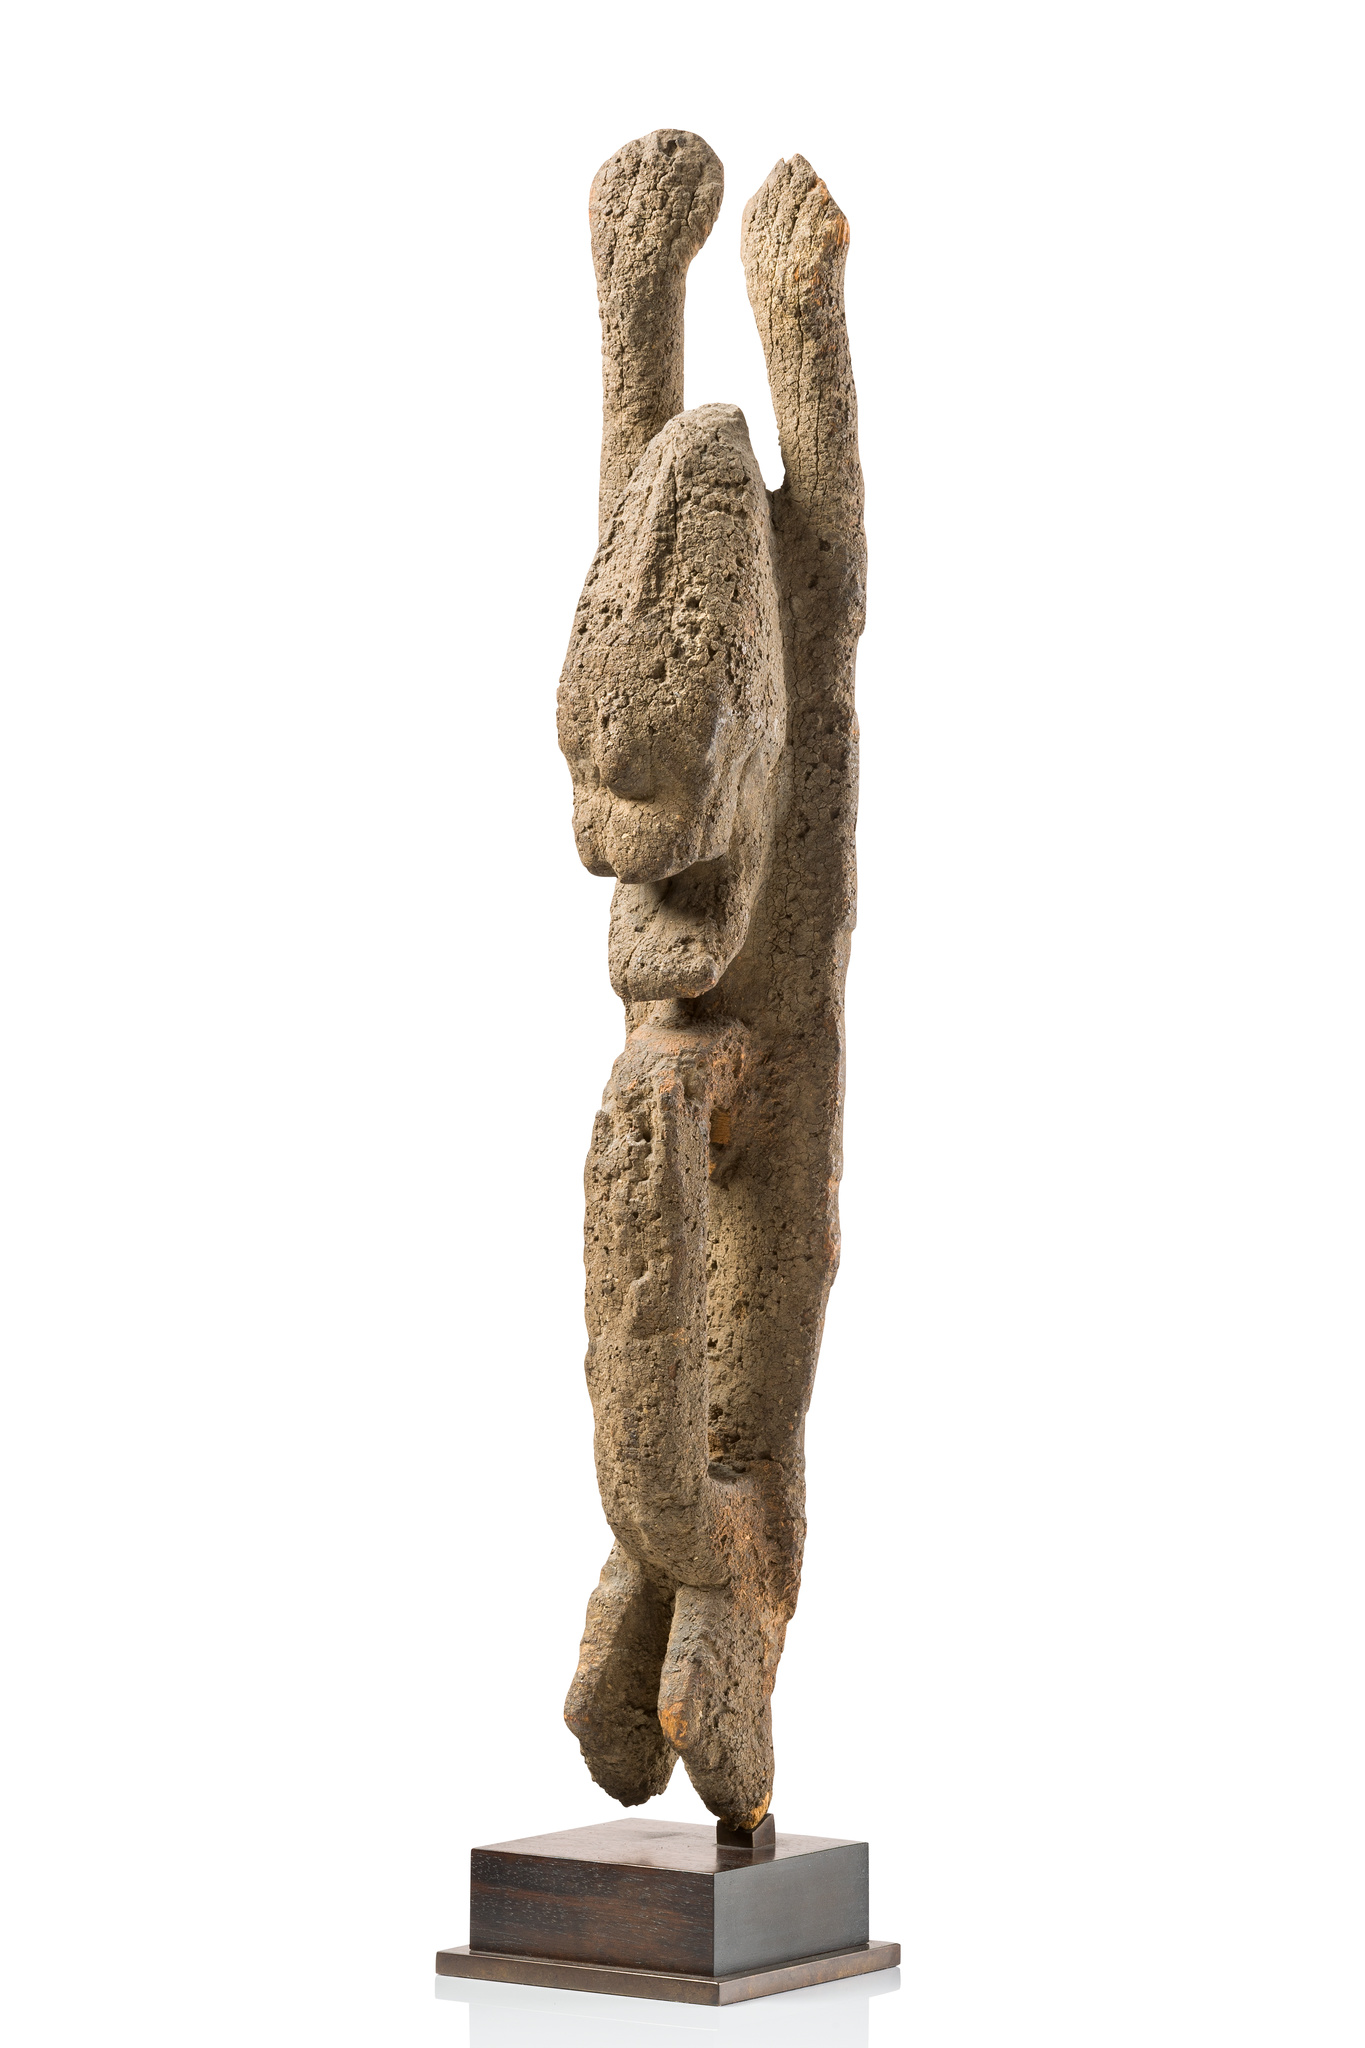 Very early statue